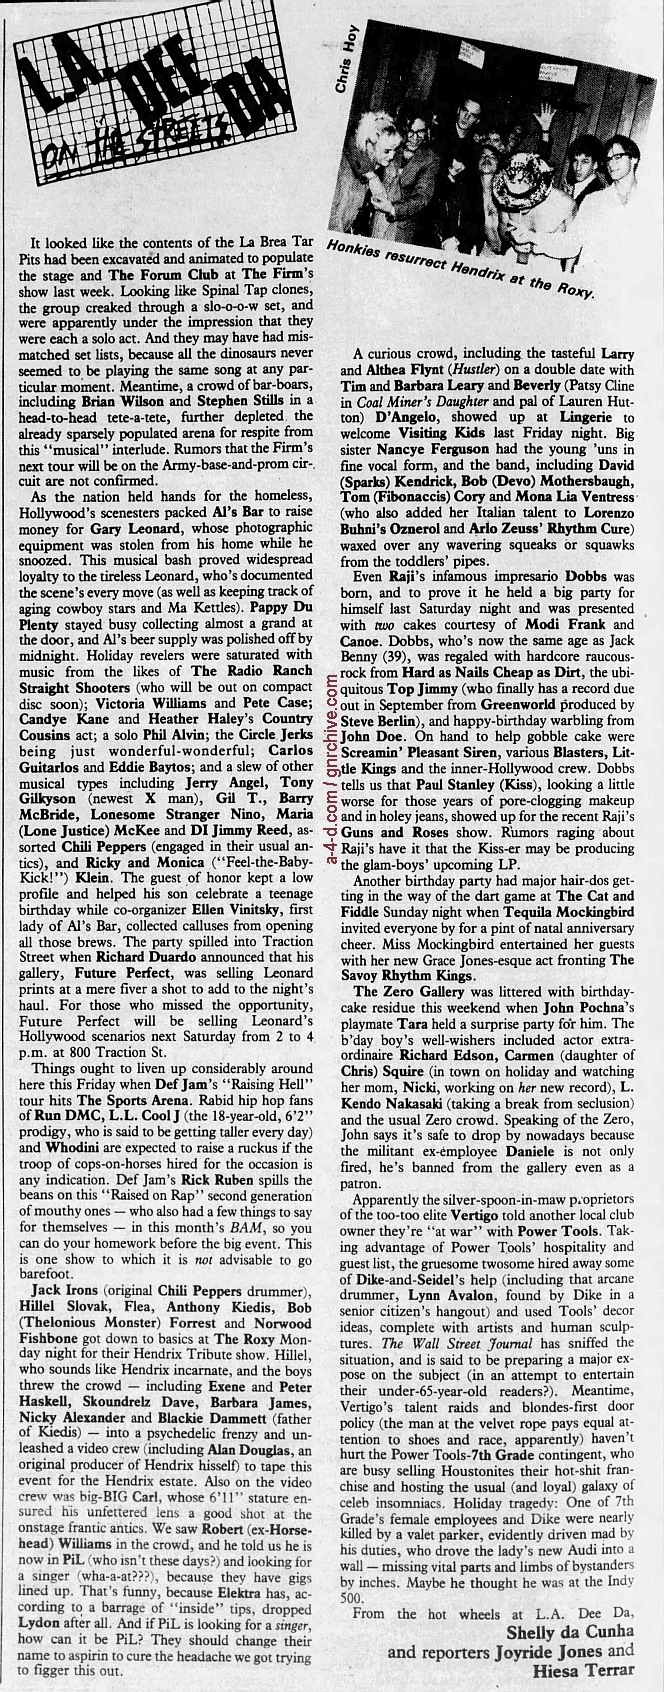 1986.05.31 - L.A. Weekly - L.A. Dee Da [Guns N' Roses - Paul Stanley mention] 1986_032